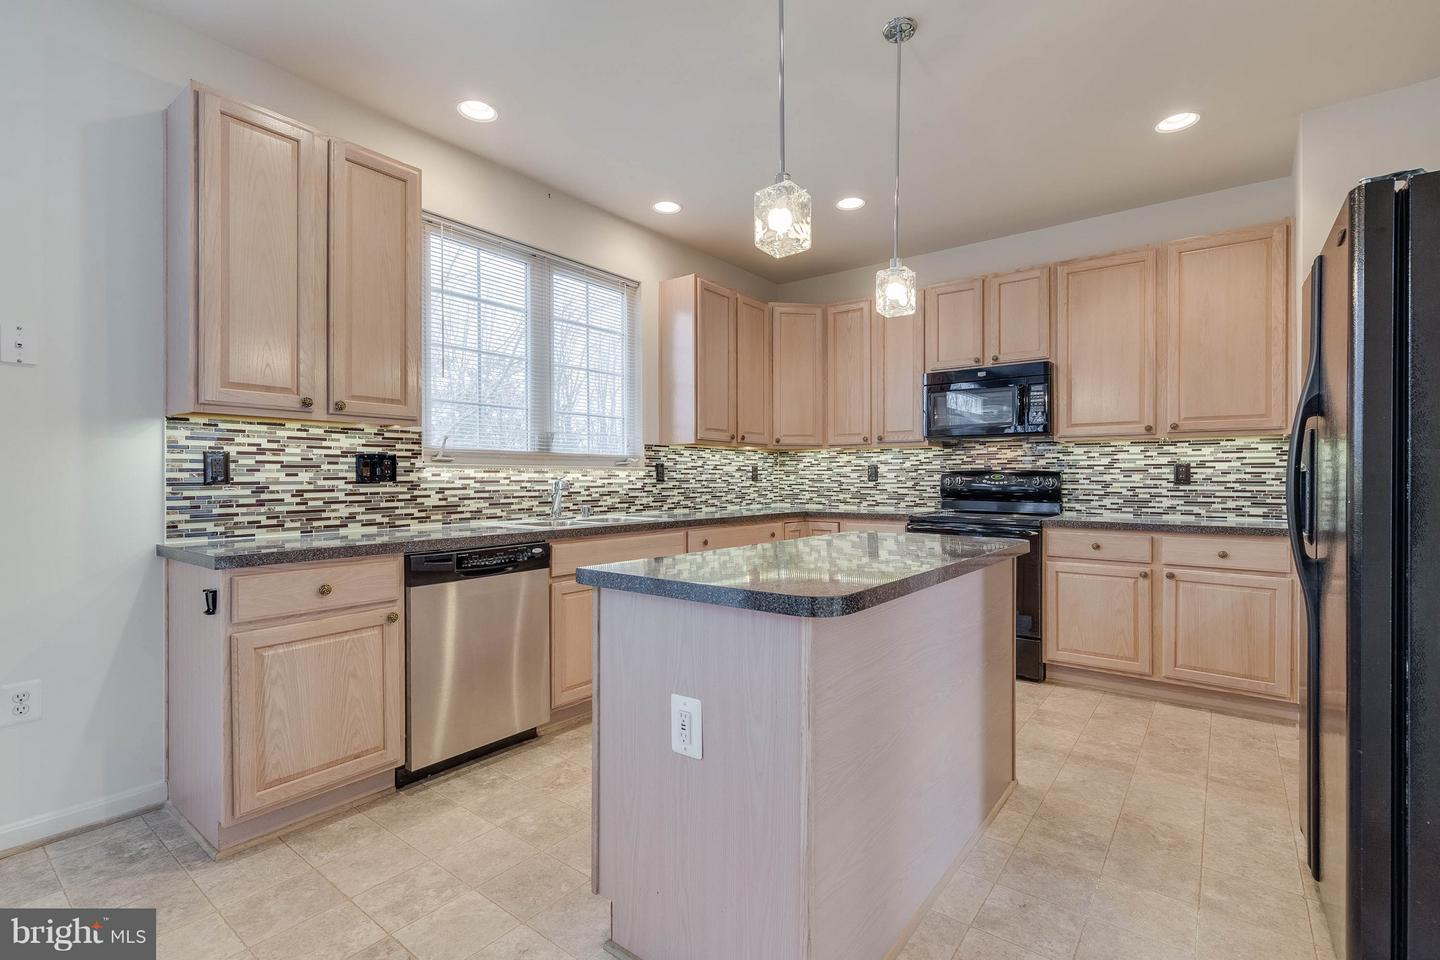 Additional photo for property listing at 15004 Lutz Ct 15004 Lutz Ct Woodbridge, Virginia 22193 United States